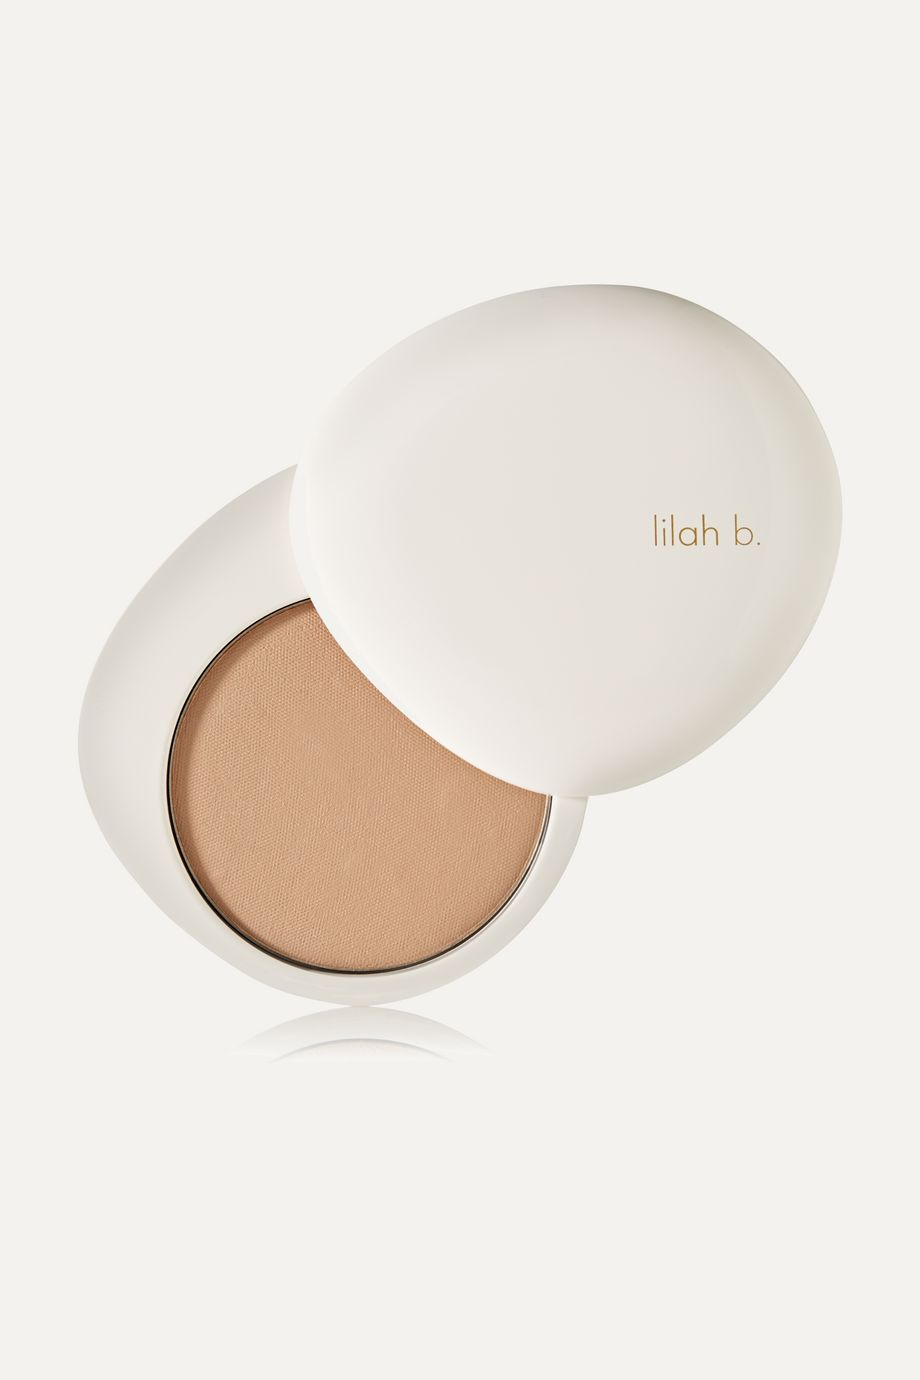 Lilah B. Fond de teint Flawless Finish, b.natural